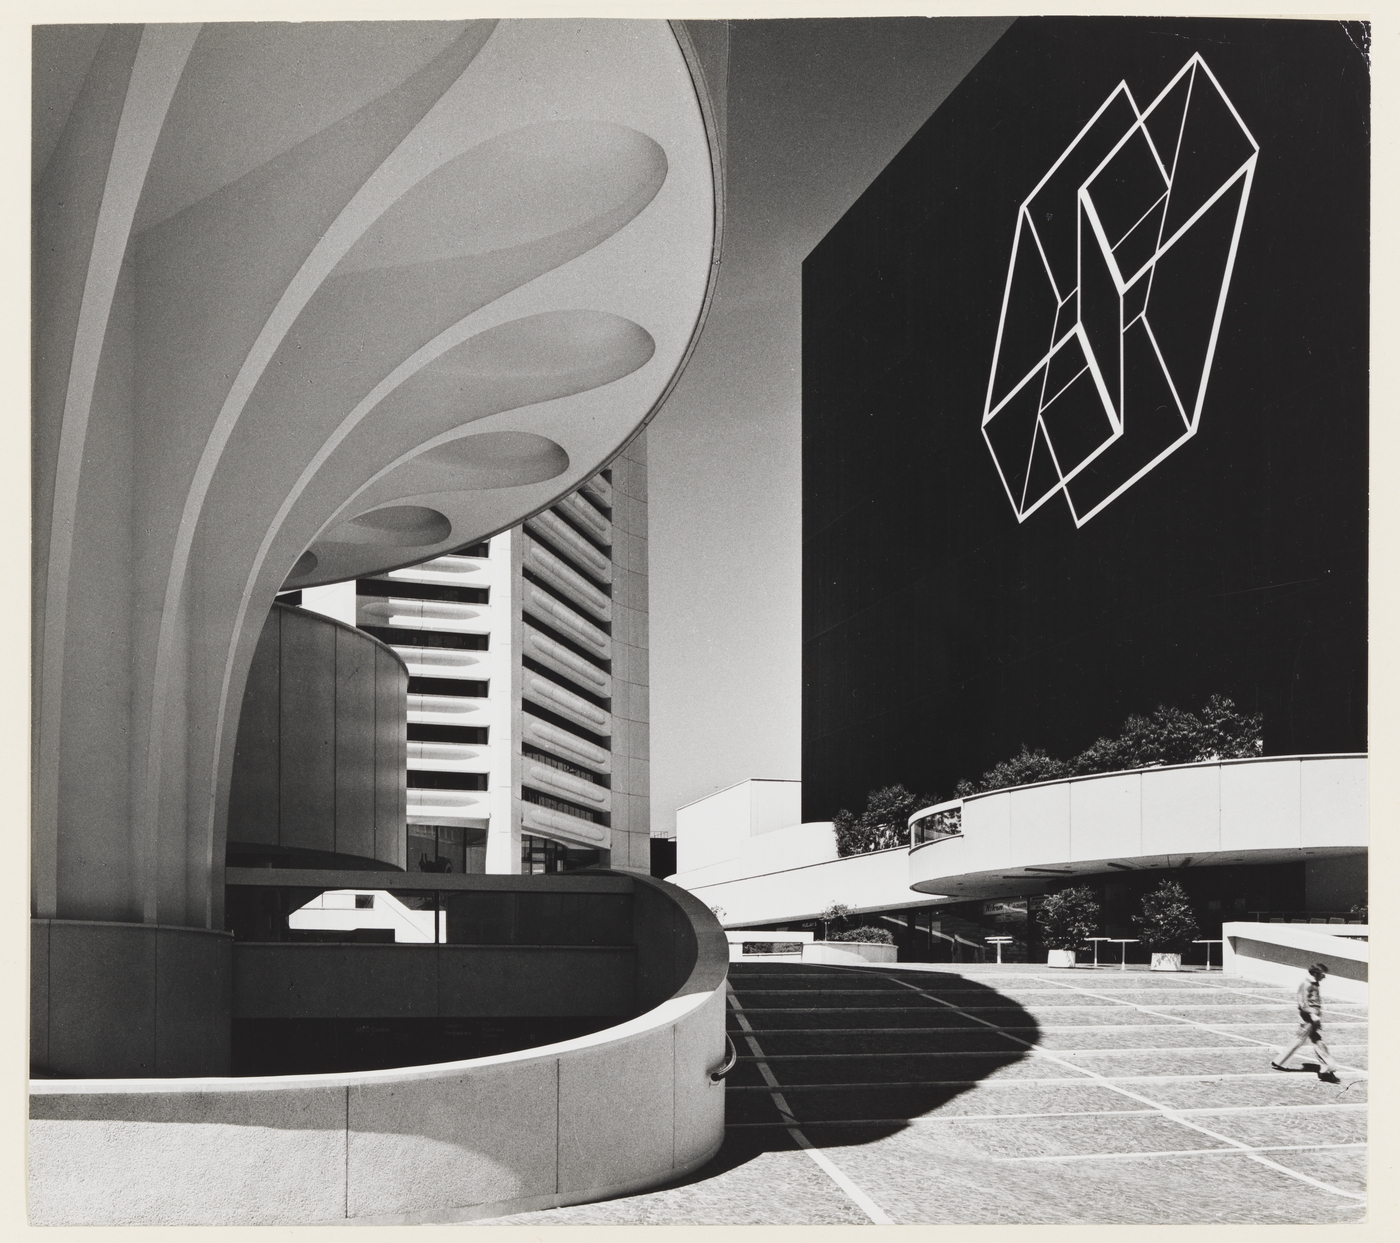 Harry Seidler collection | Stories | State Library of NSW